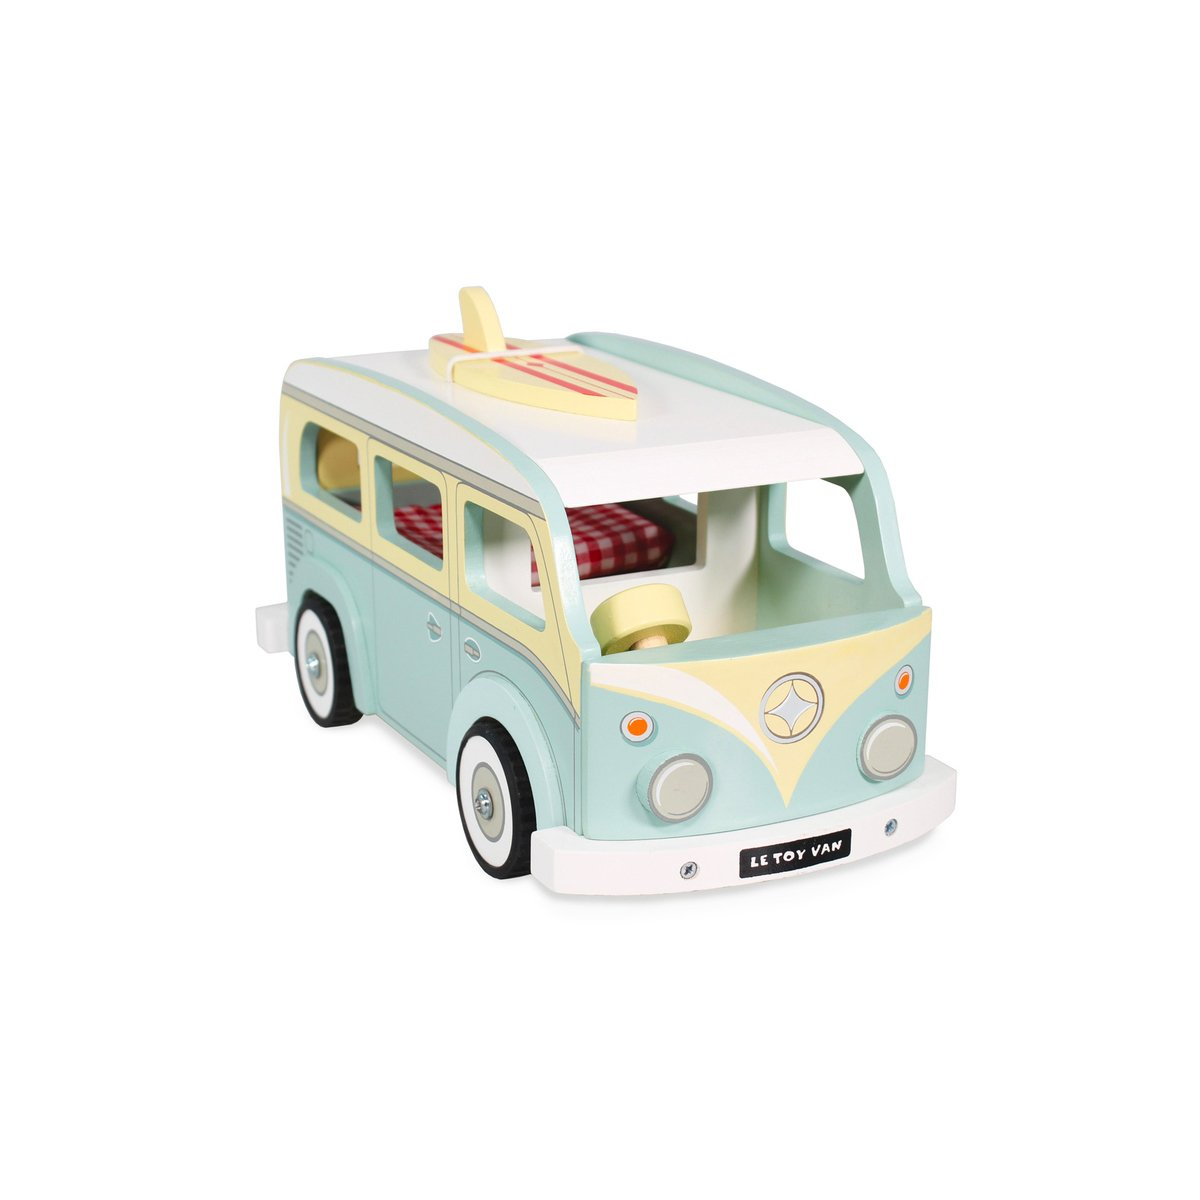 Le Toy Van Holiday Campervan Le Toy Van Toy Cars at Little Earth Nest Eco Shop